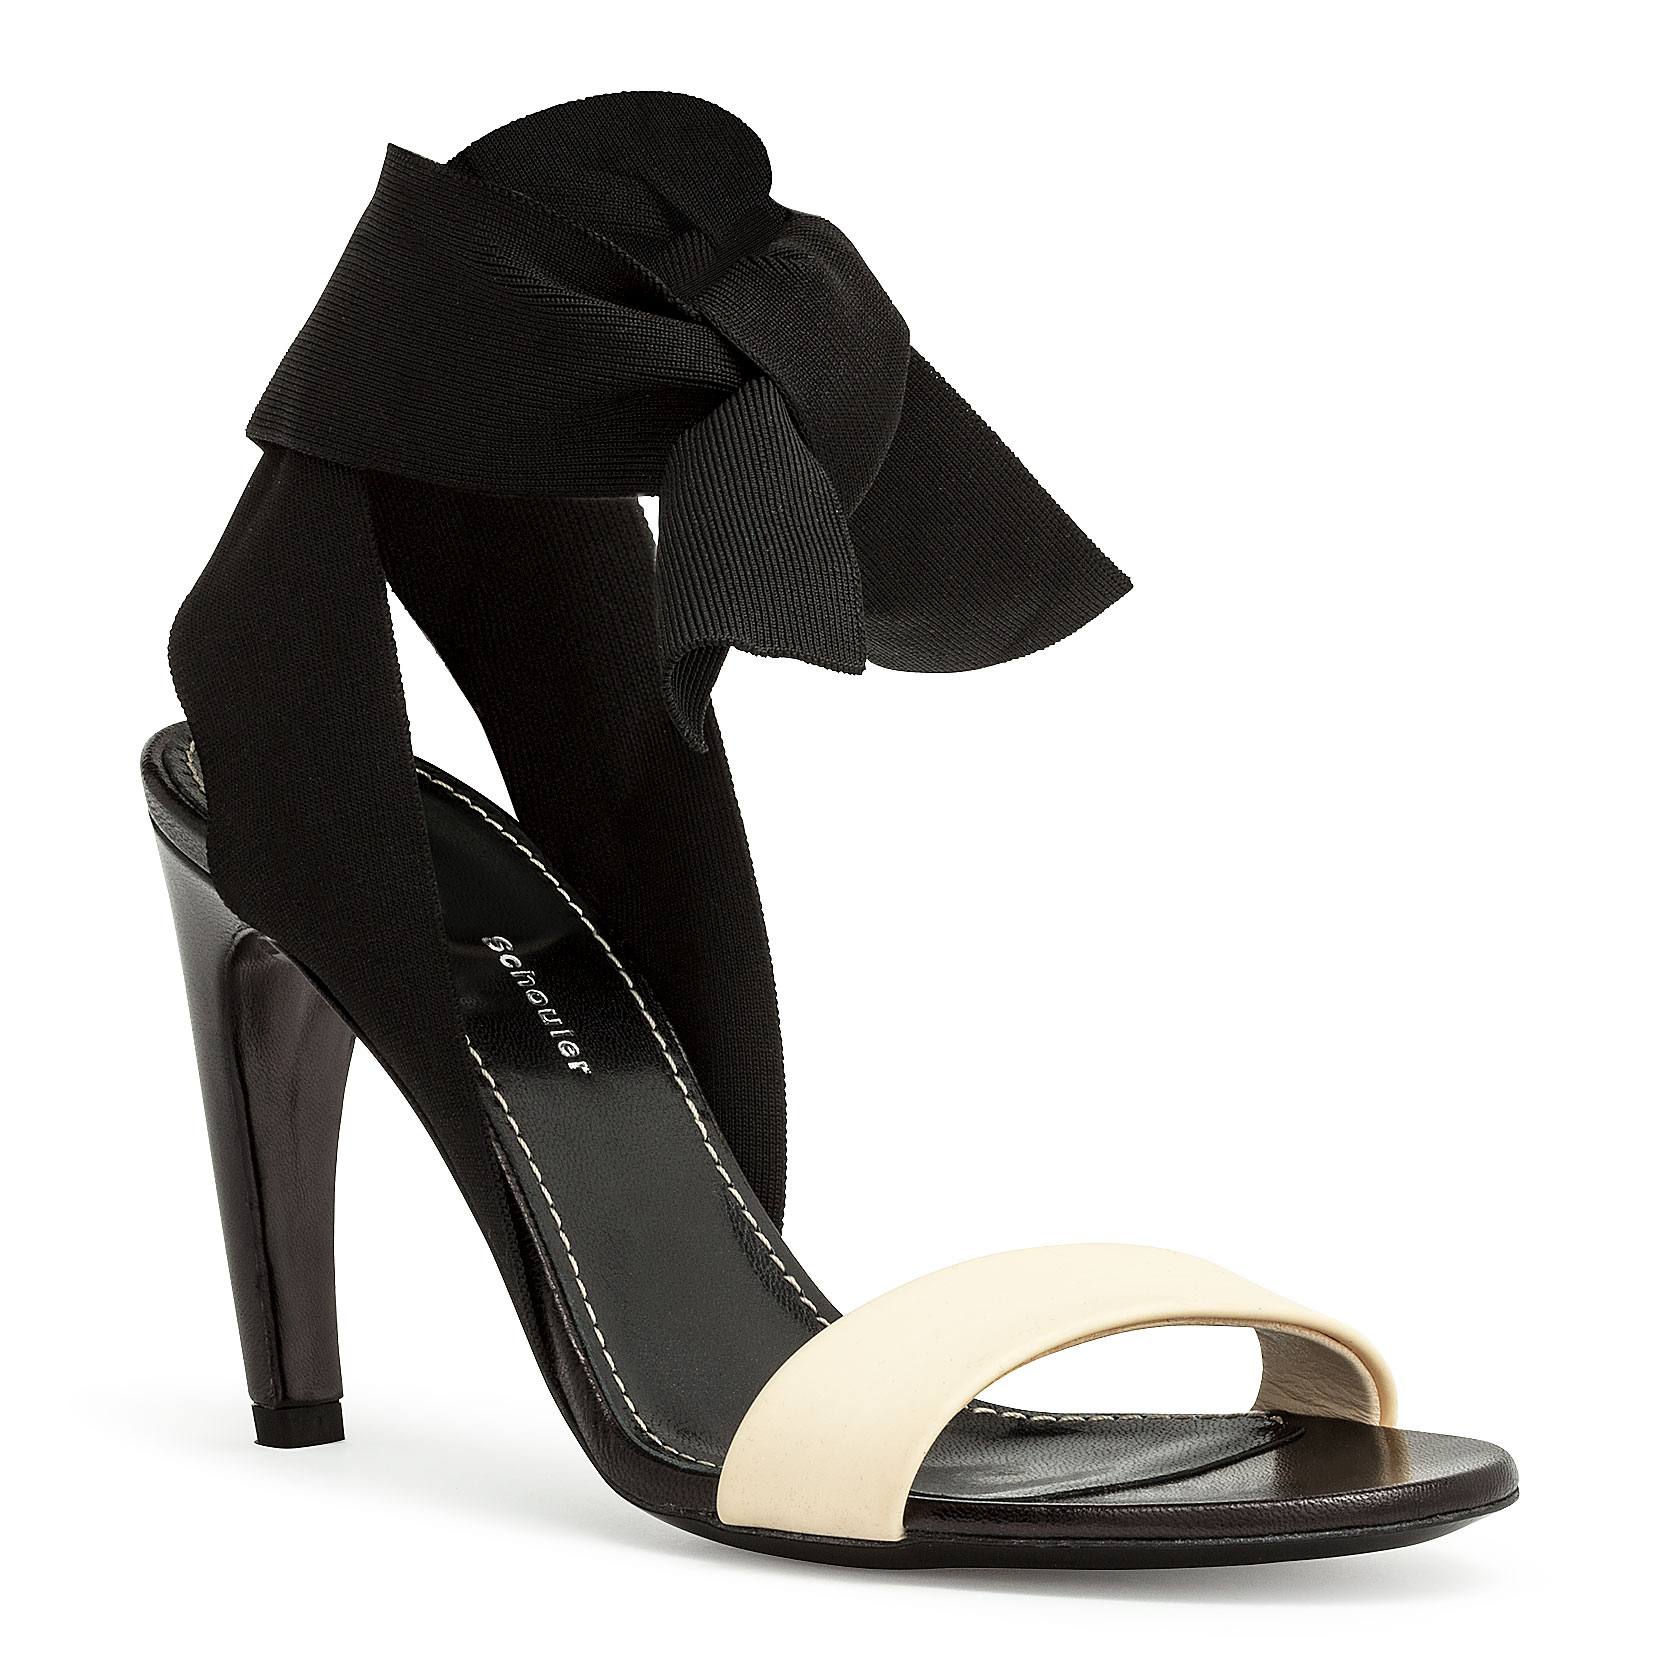 Proenza Schouler Ankle Tie Curved Heel Sandals In Black/White